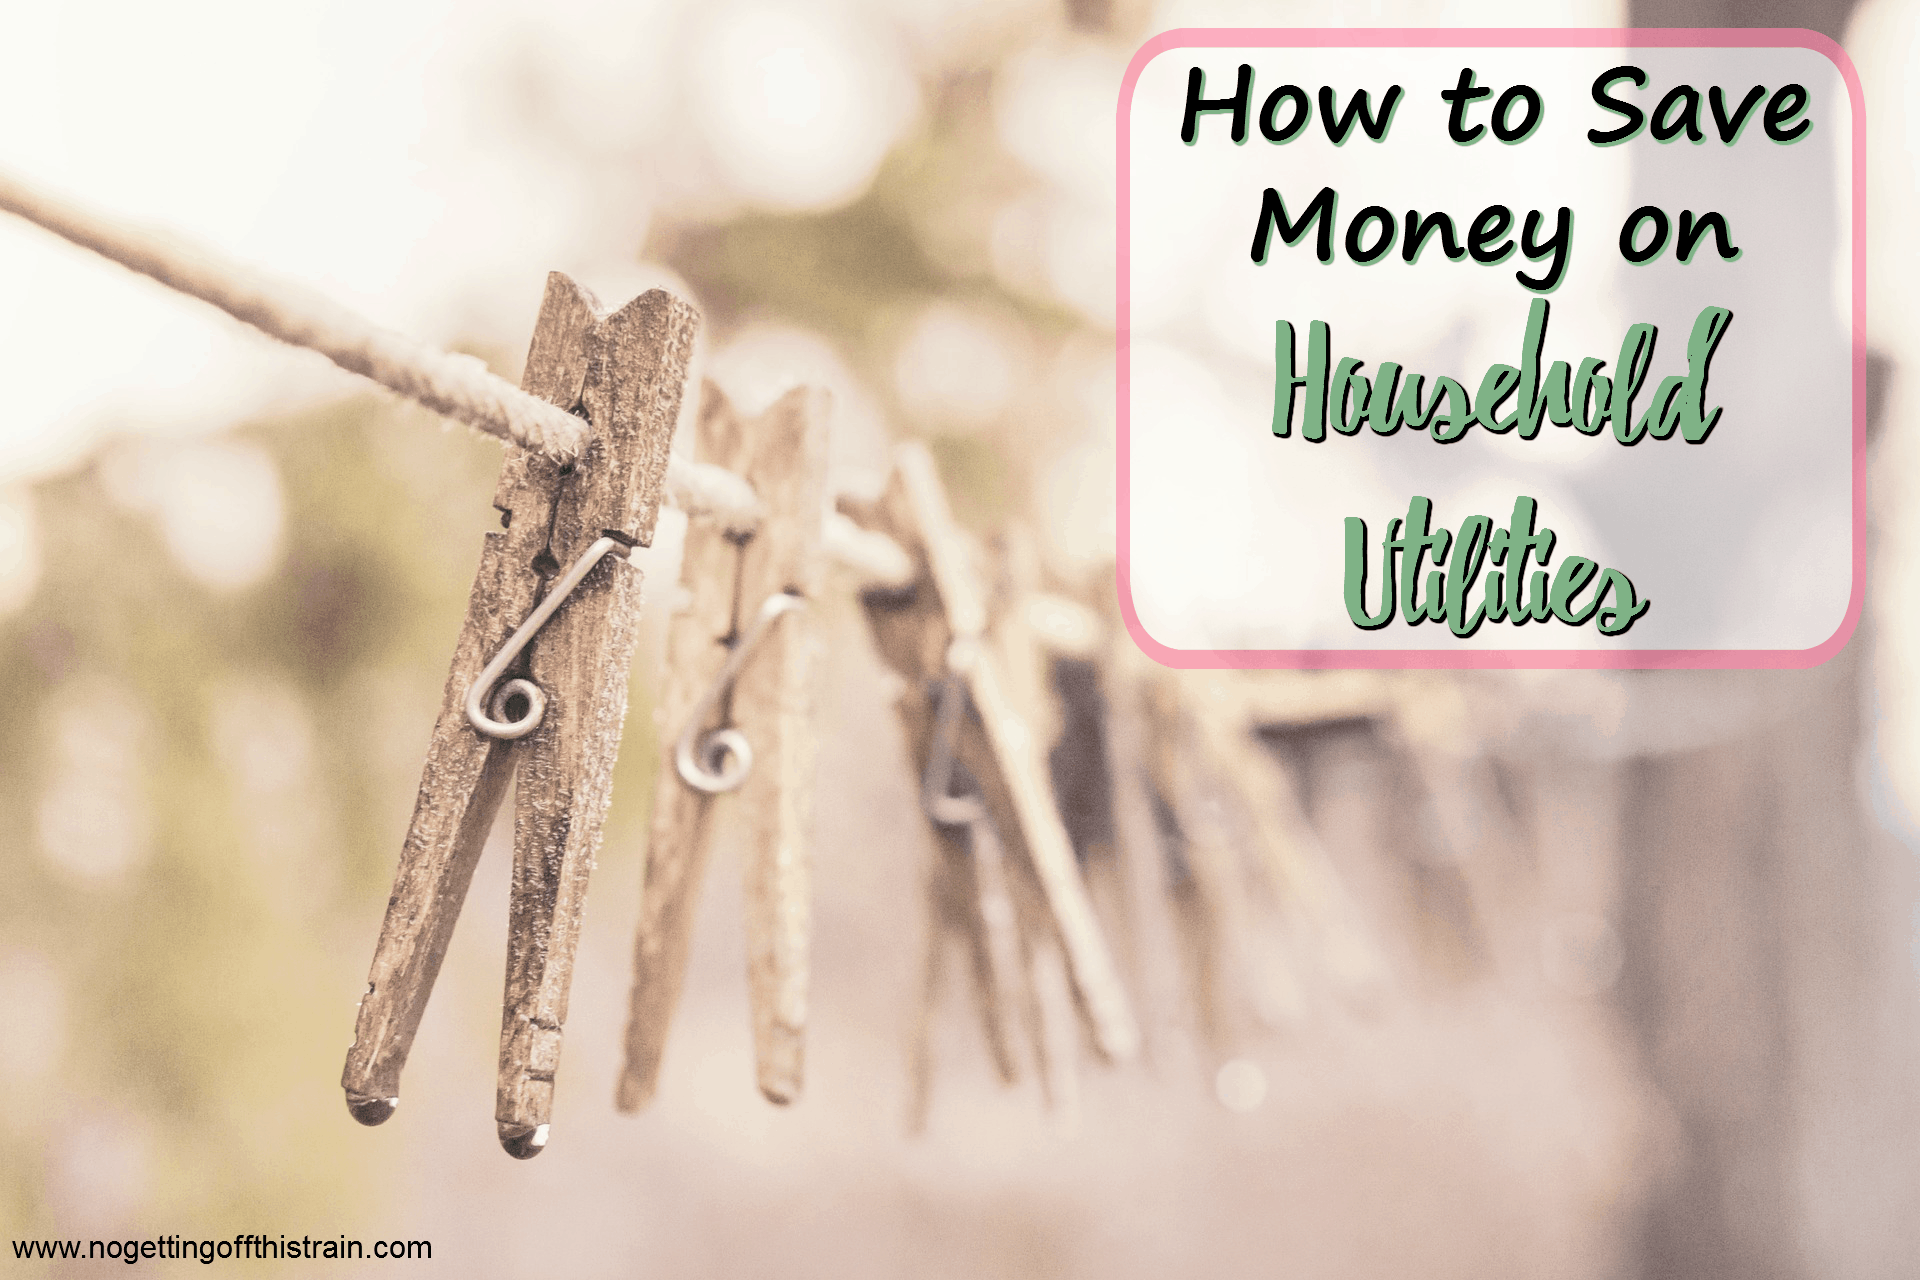 How to Save Money on Household Utilities